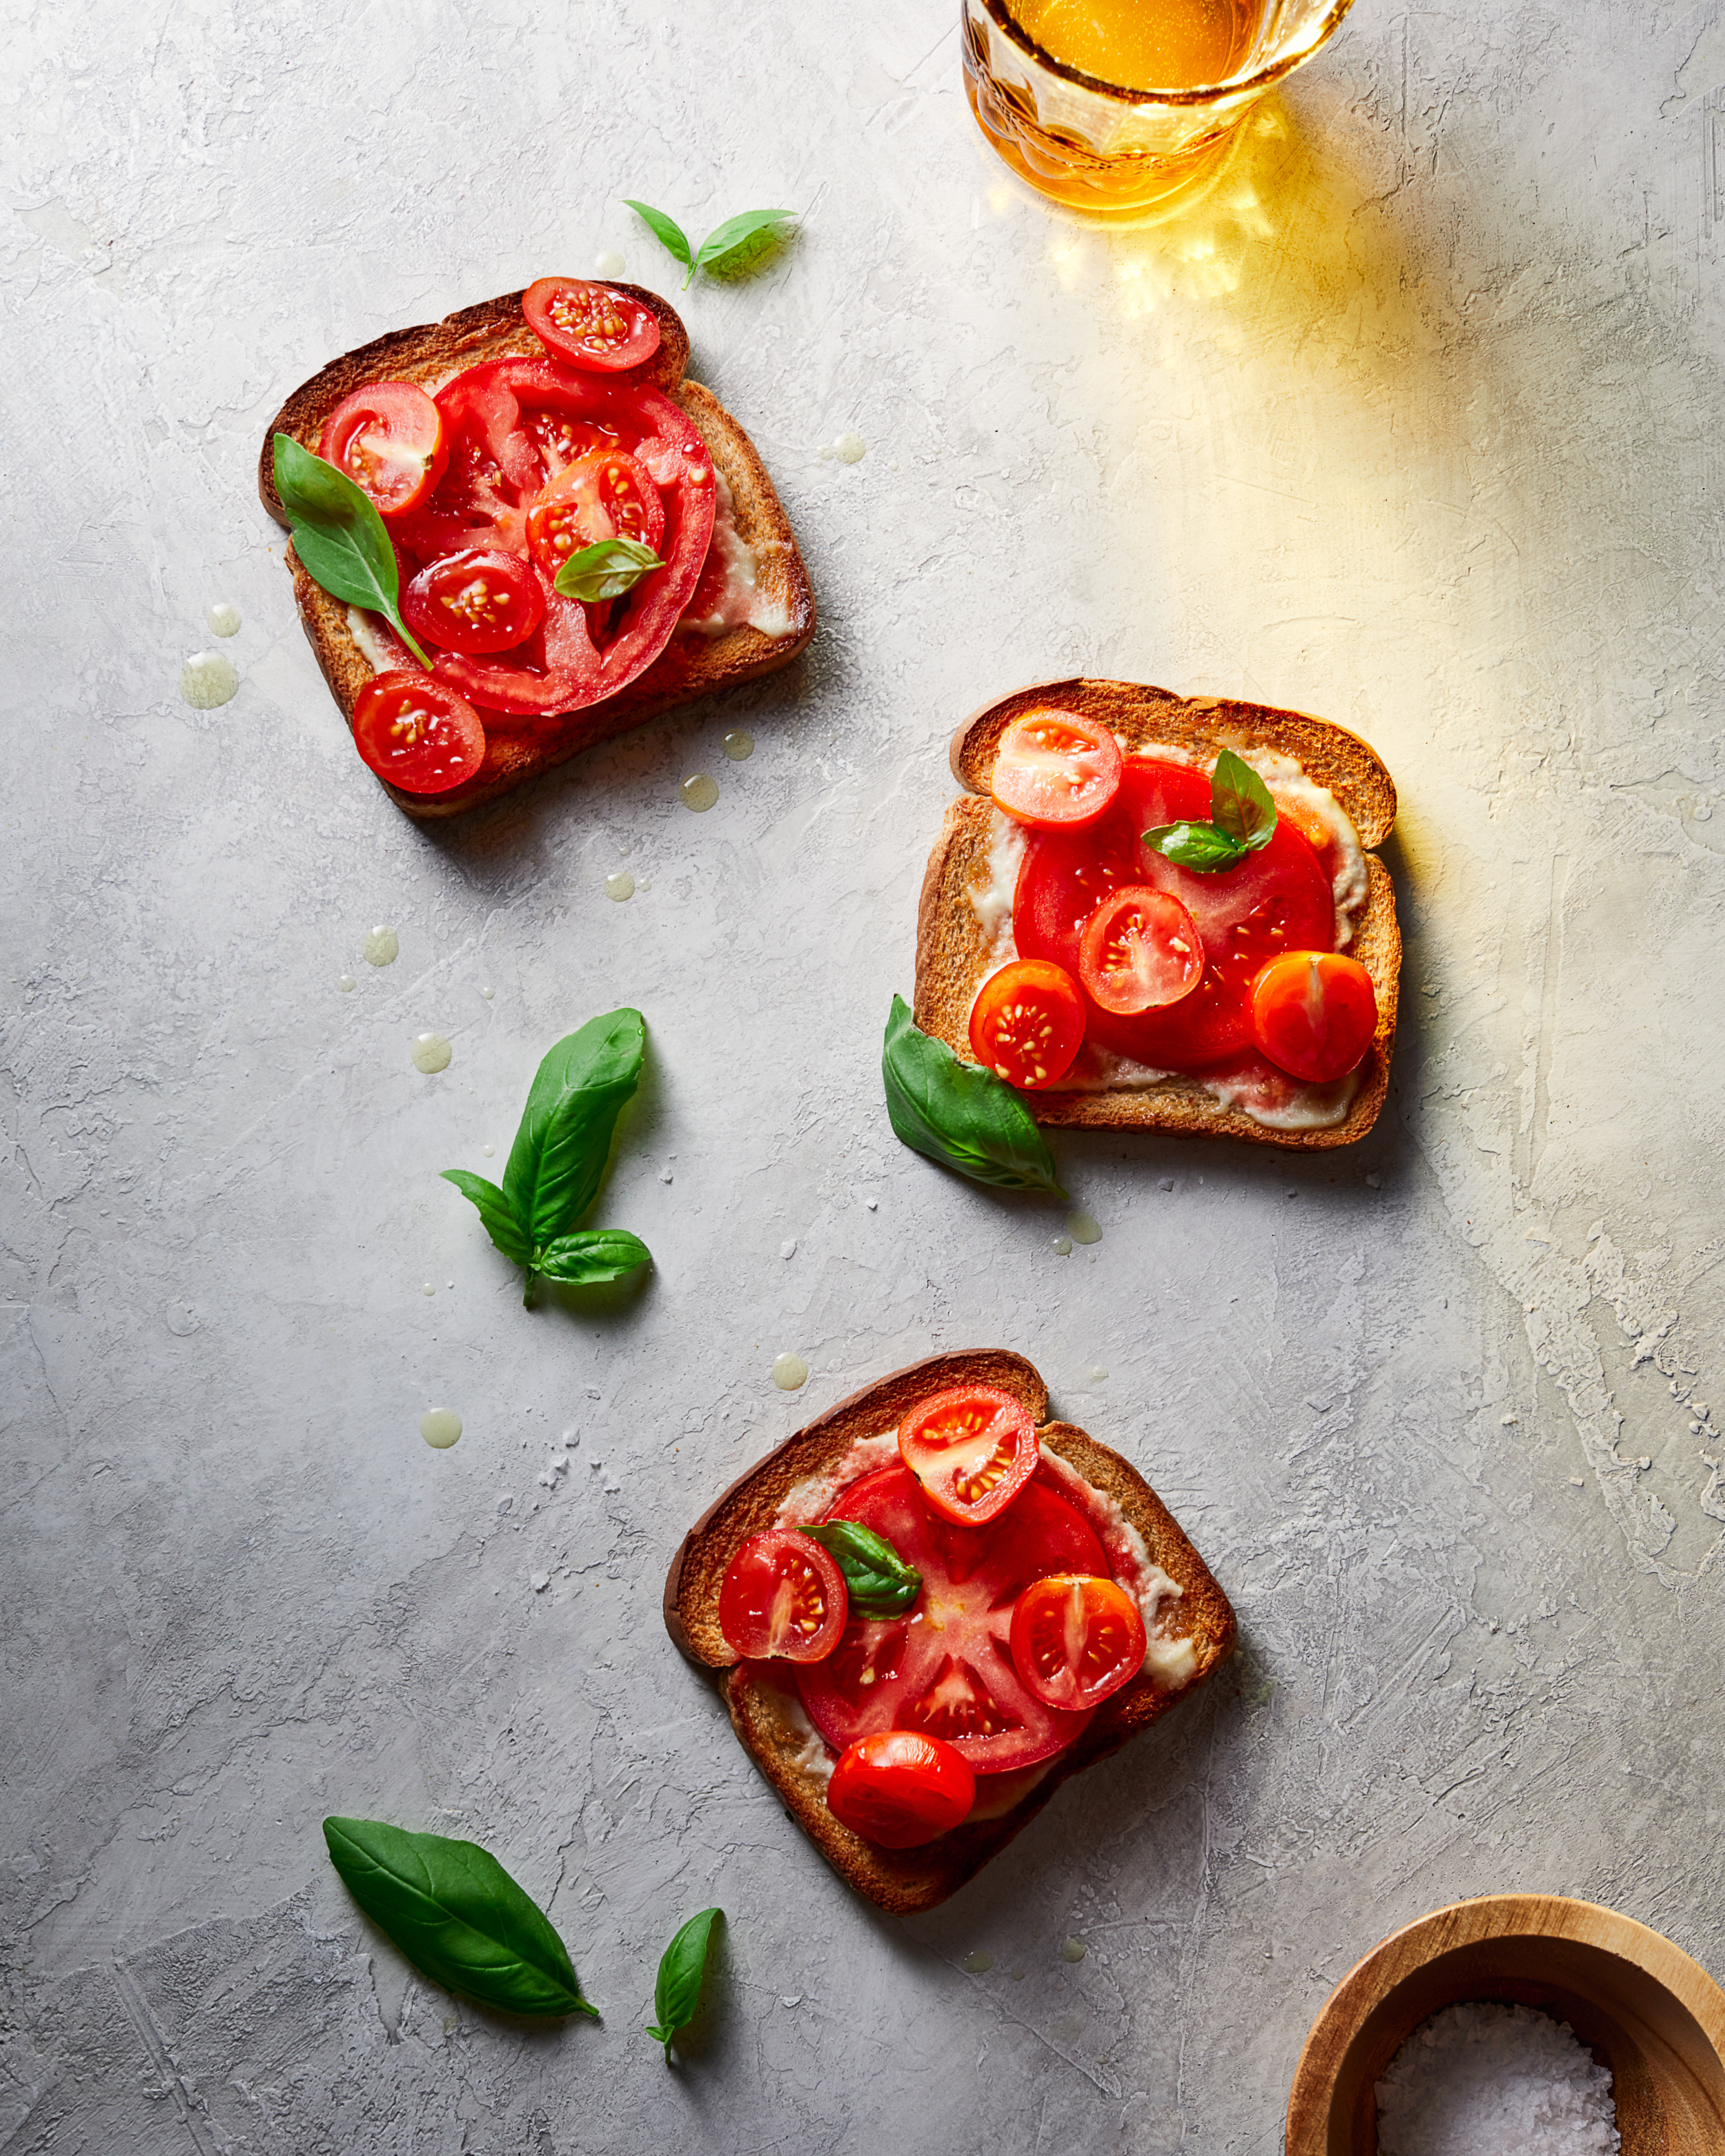 Tomato-Garlic-Toast-Los-Angeles-Commercial-Food-Photographer-Brandon-Figueroa-0.jpg